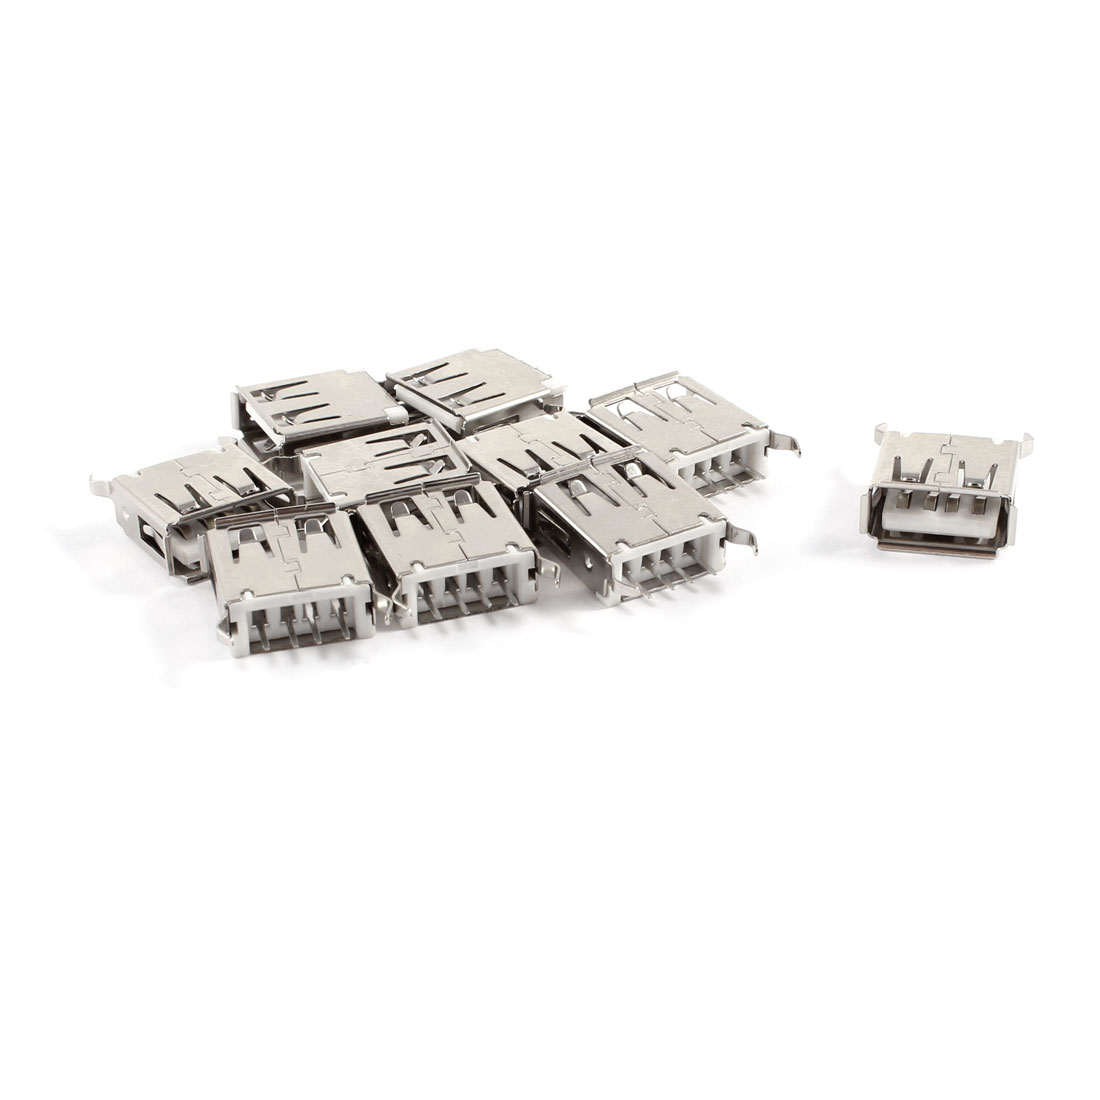 10 Pcs USB 2.0 A Type Female Straight PCB Mount Jack Connector